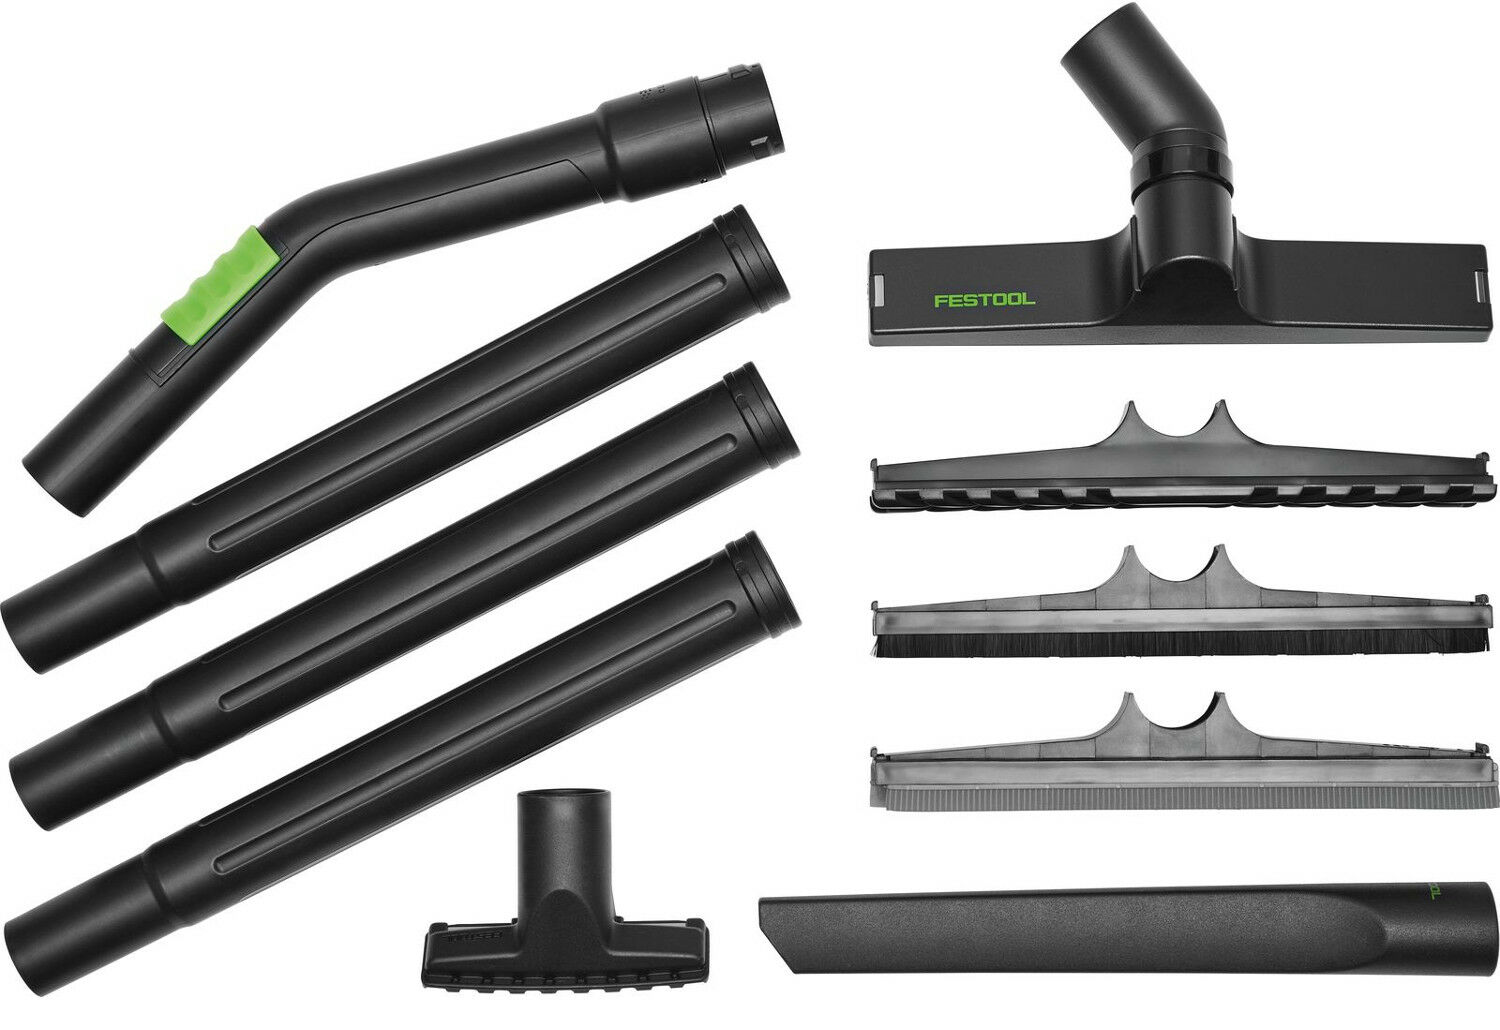 Festool D 27/D 36 K-RS-Plus Compact Cleaning Set in T-LOC Systainer (2018 Model)